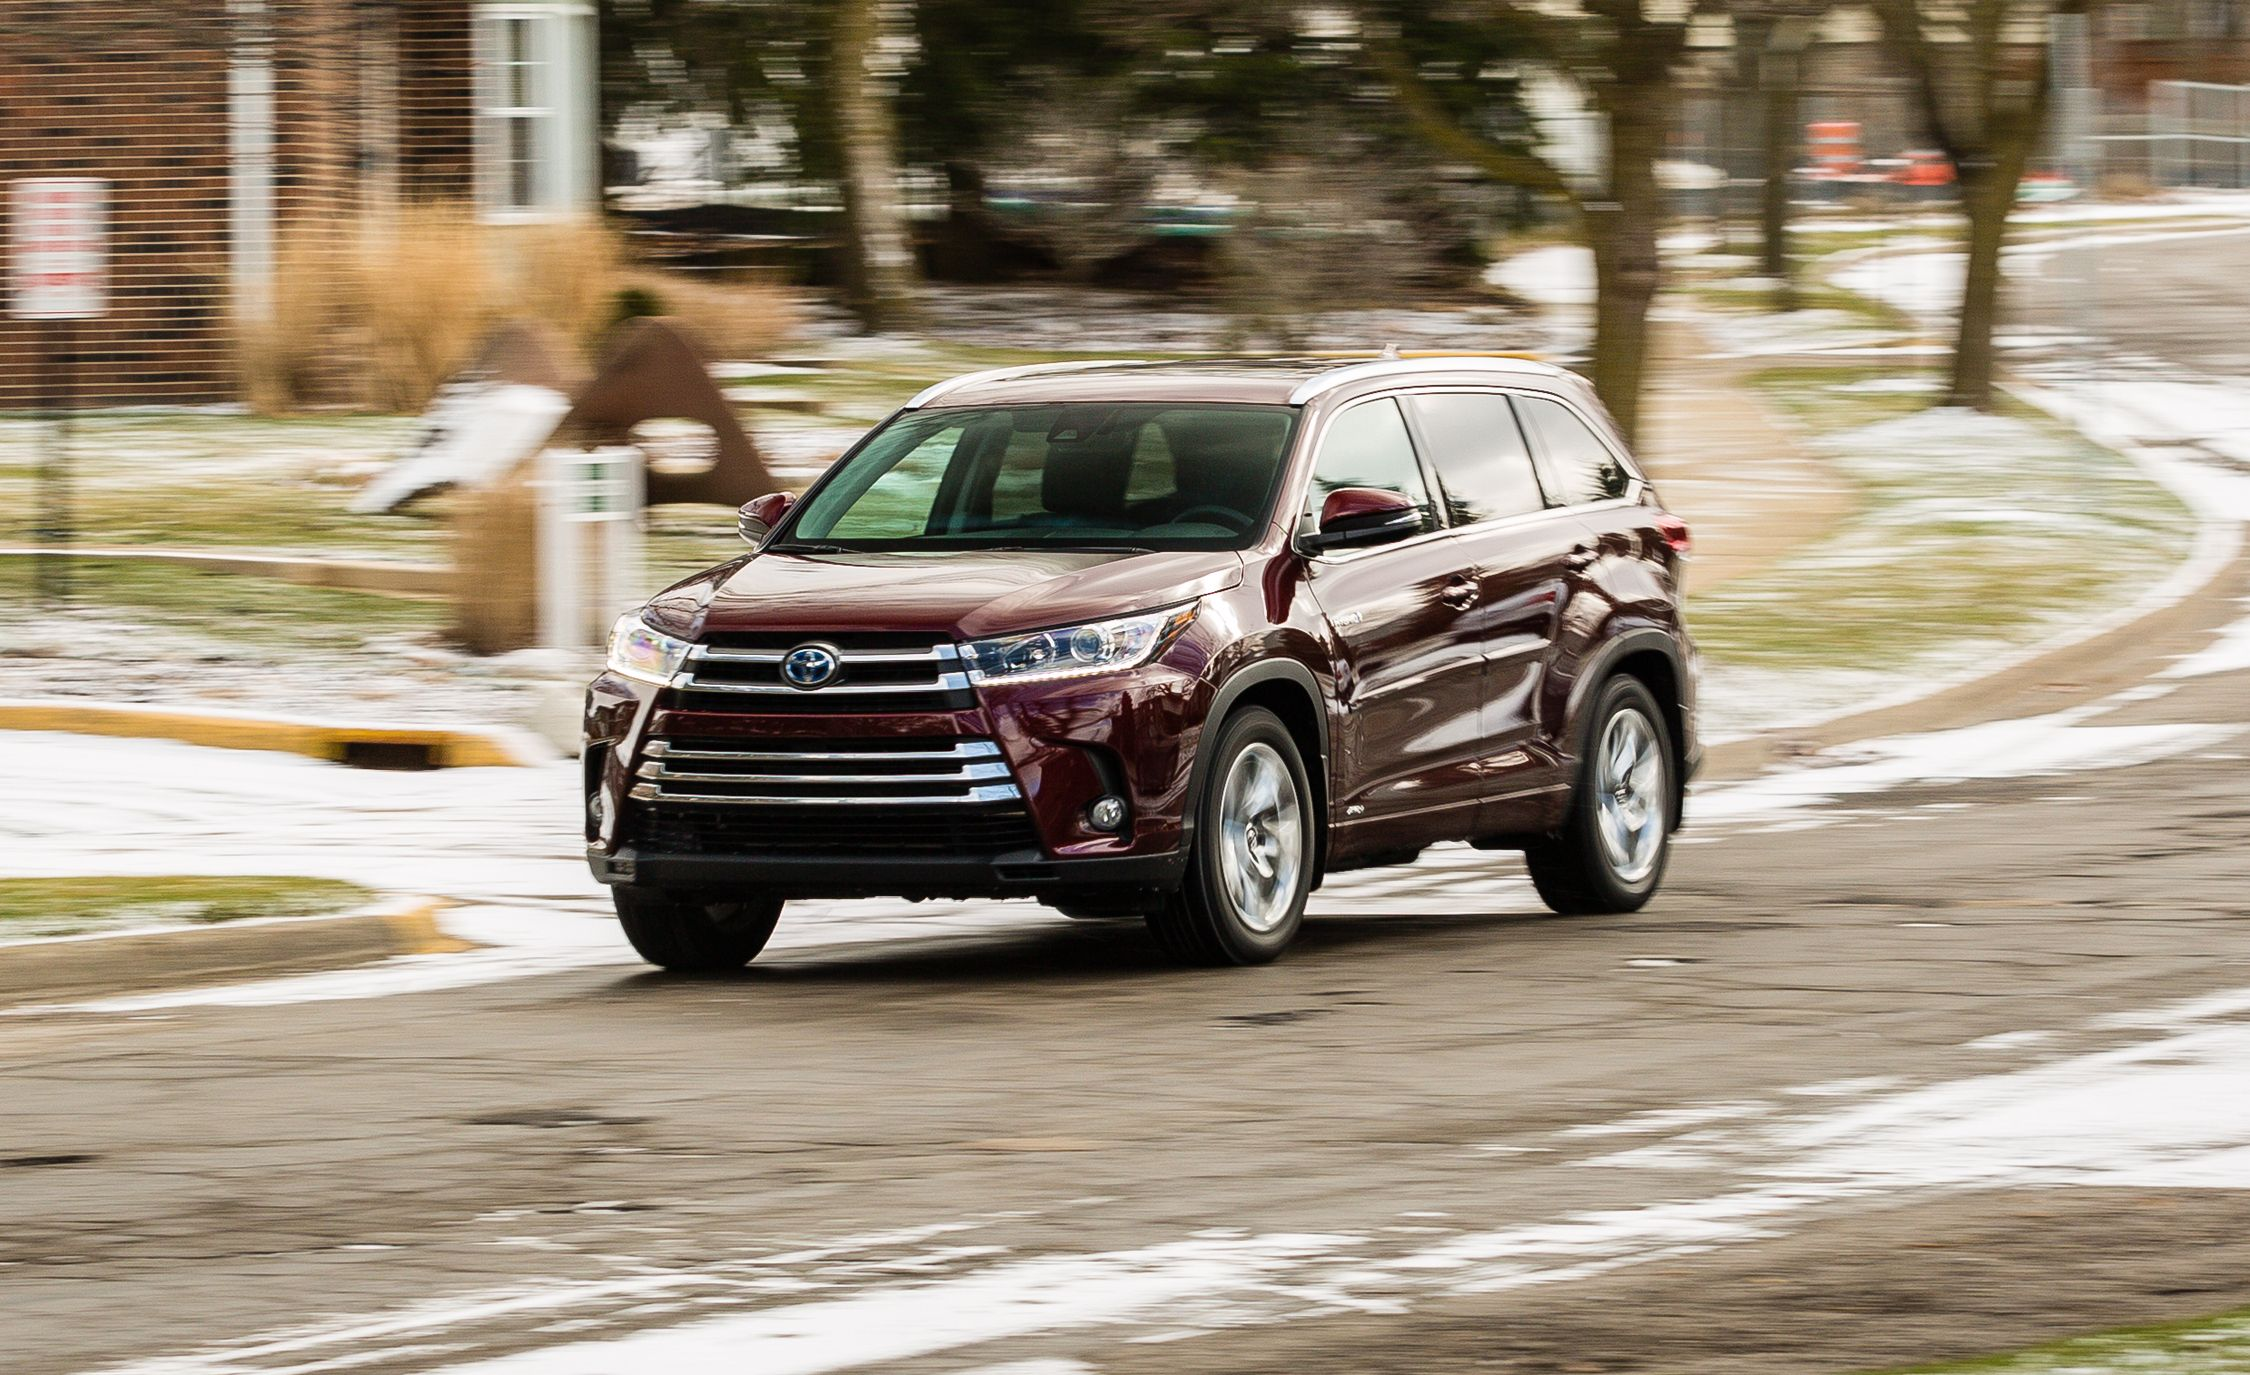 Marvelous 2017 Toyota Highlander Hybrid